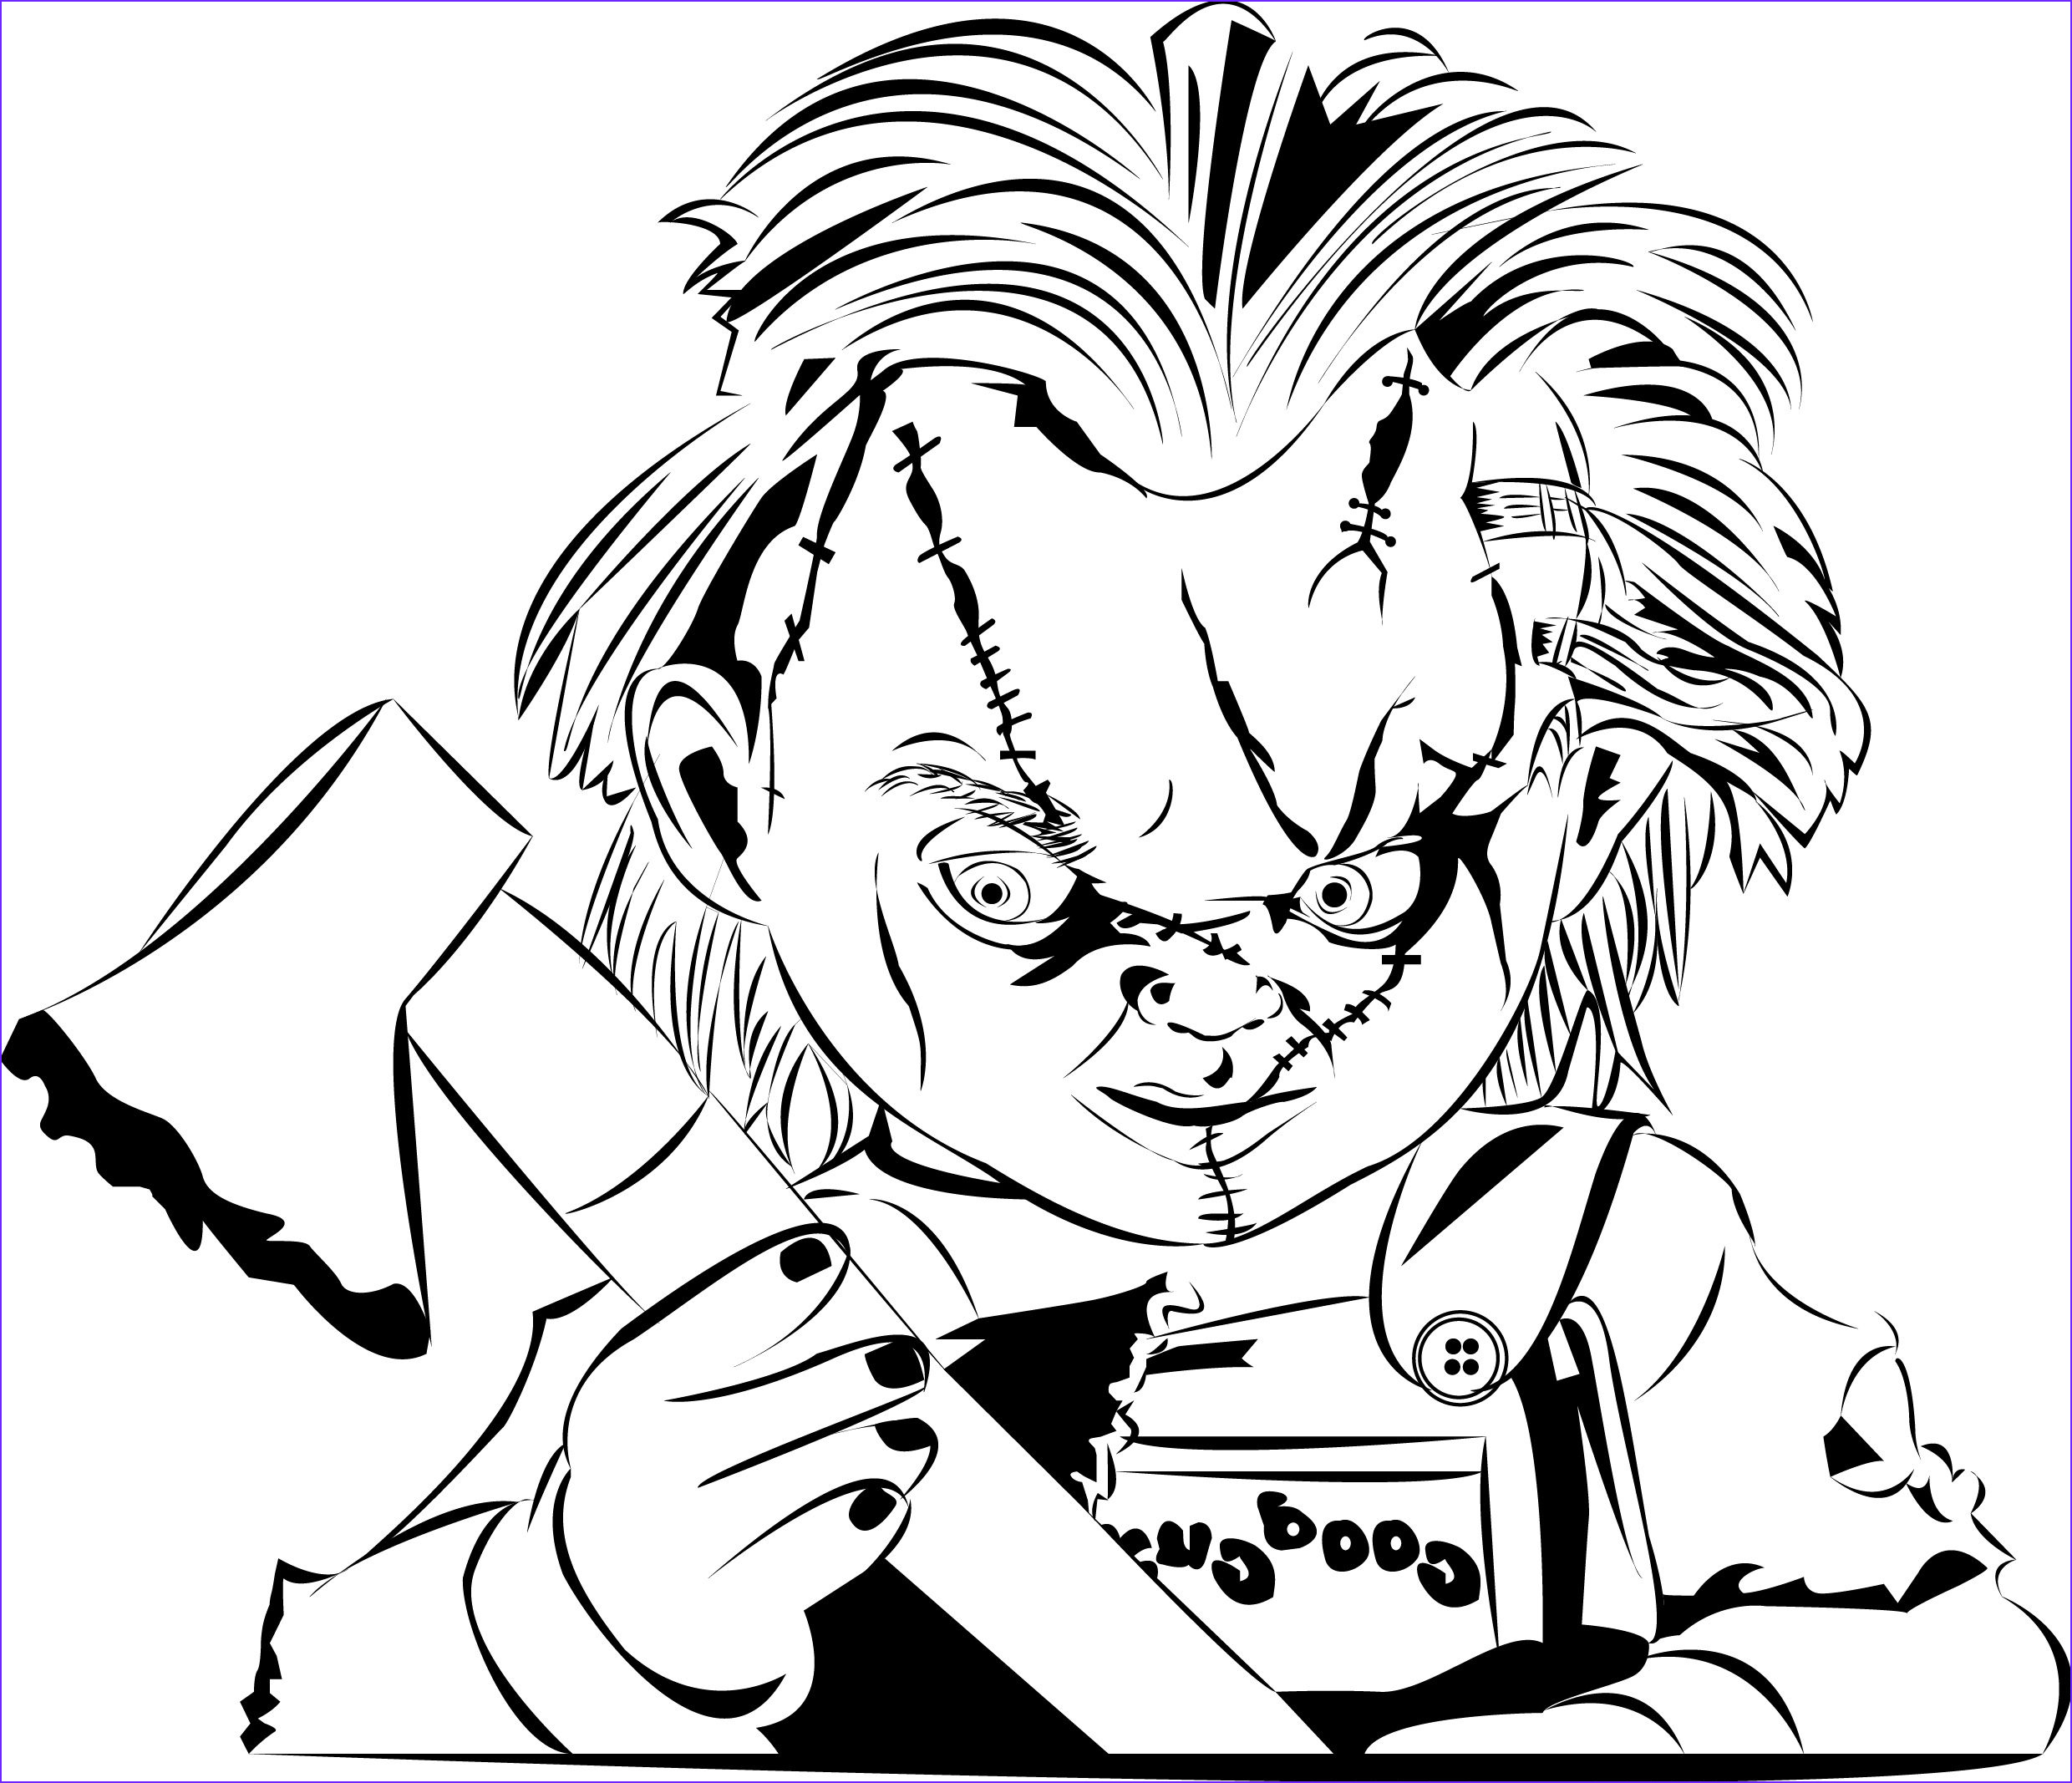 Chucky Coloring Page Best Of Image Chucky Color In 2019